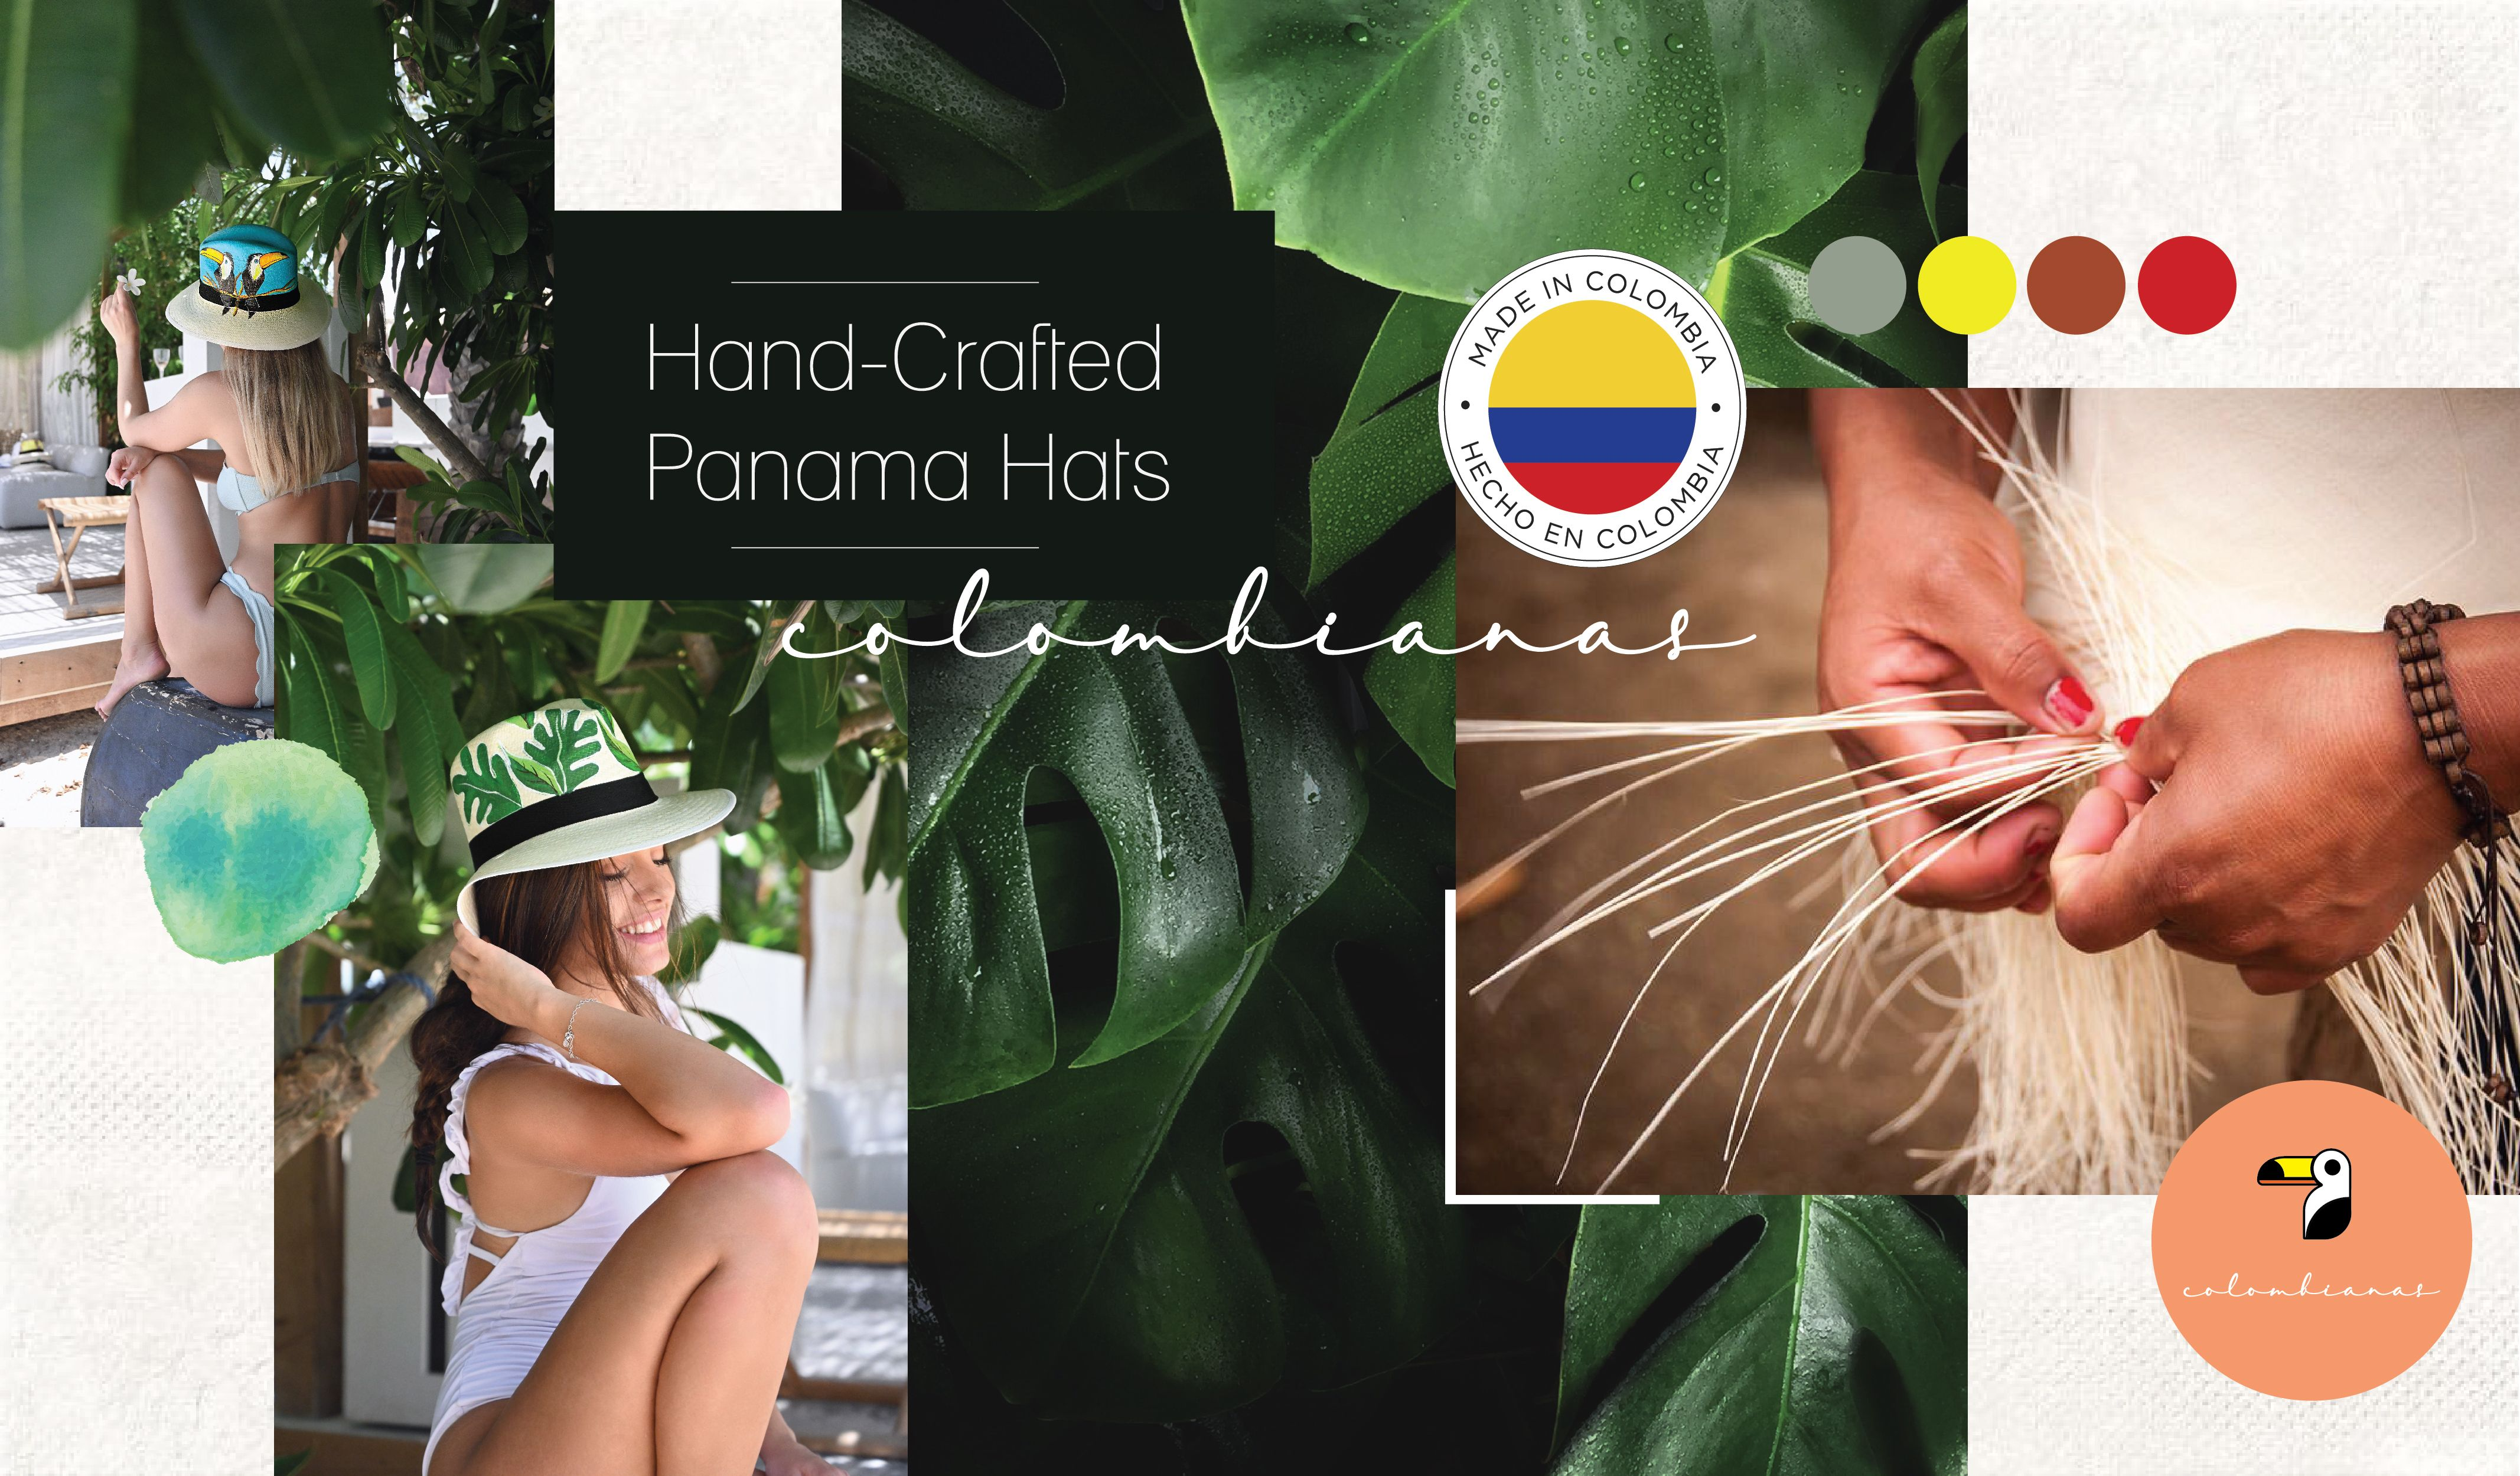 Handcrafted Panama Hats